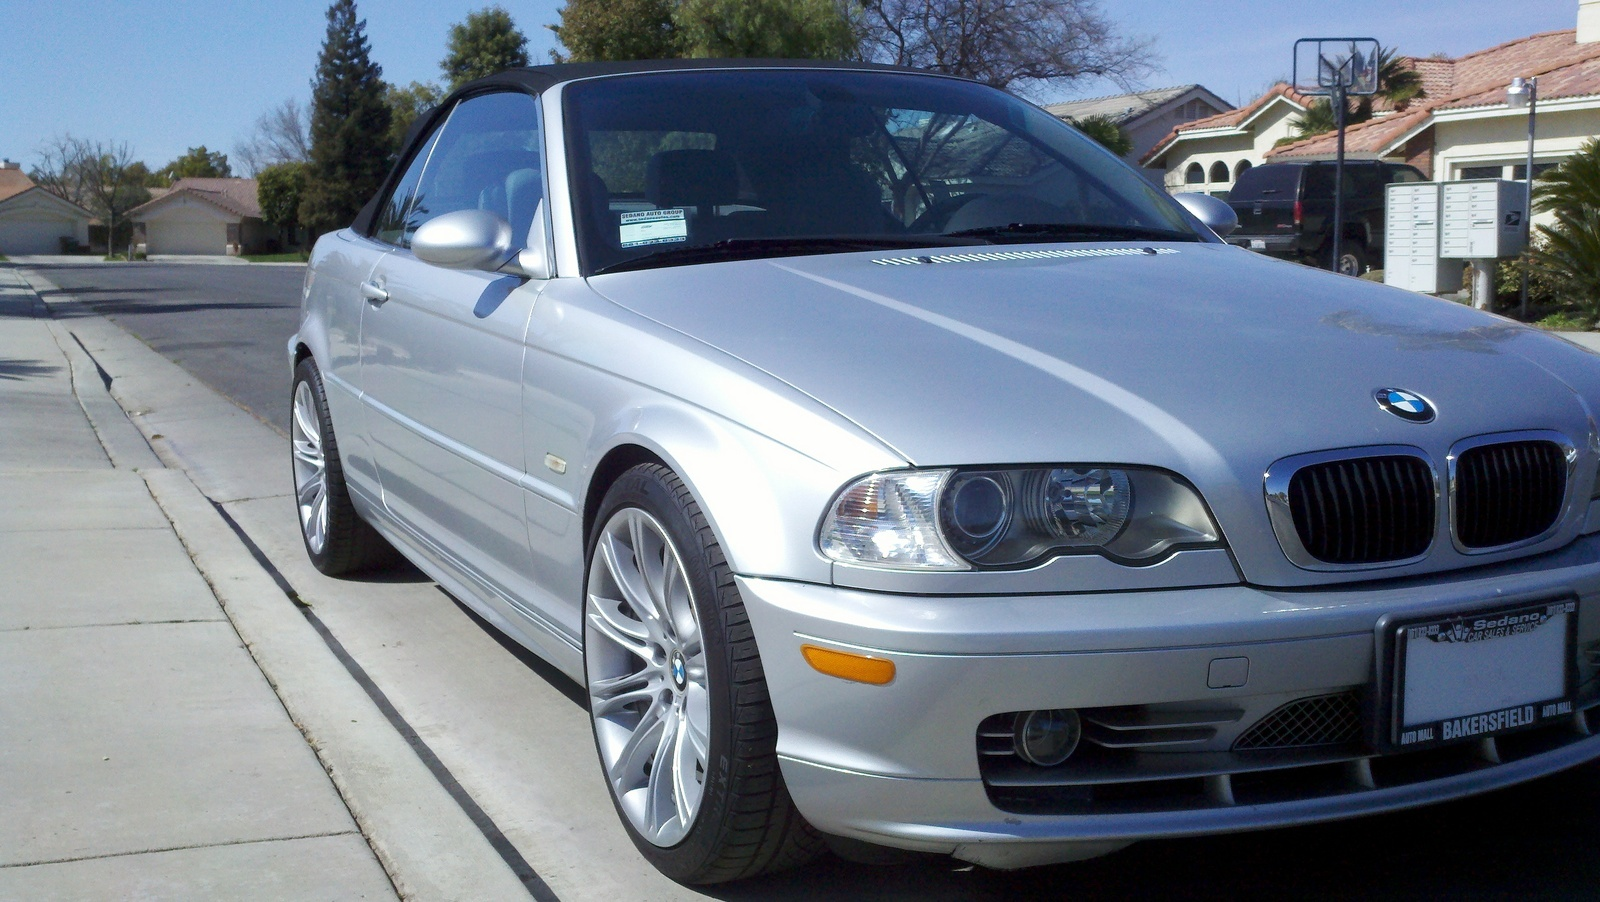 I just bought 330 it has 89 000 miles and i have no maintenance records what should i be watching for this is my first bmw i love this car